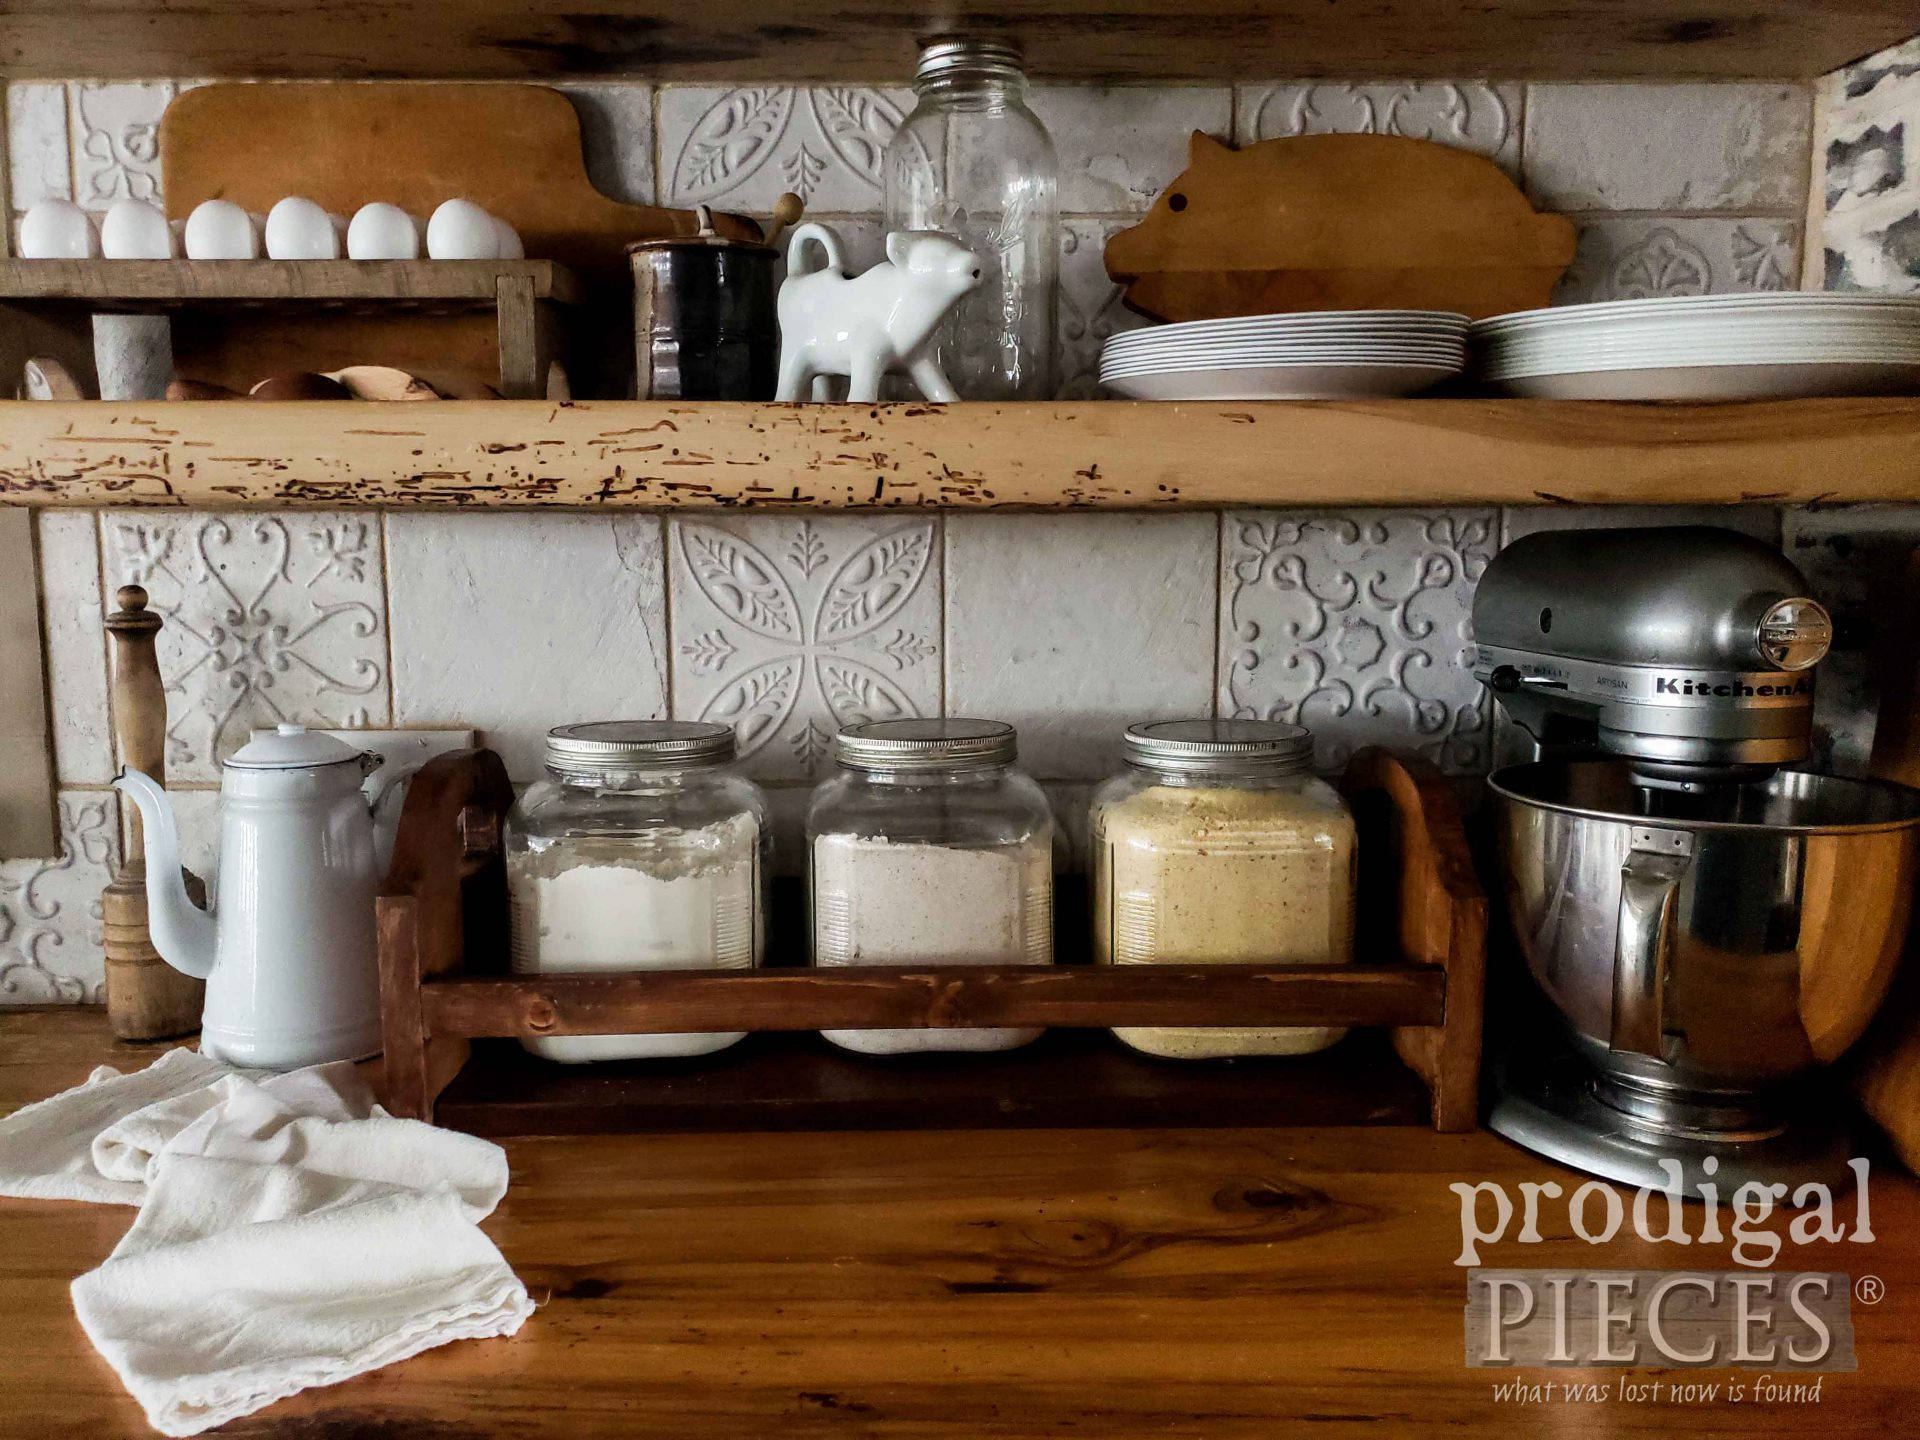 Handmade Oak Farmhouse Storage Crate for Kitchen and more | by Larissa of Prodigal Pieces | prodigalpieces.com #prodigalpieces #farmhouse #home #kitchen #storage #handmade #homedecor